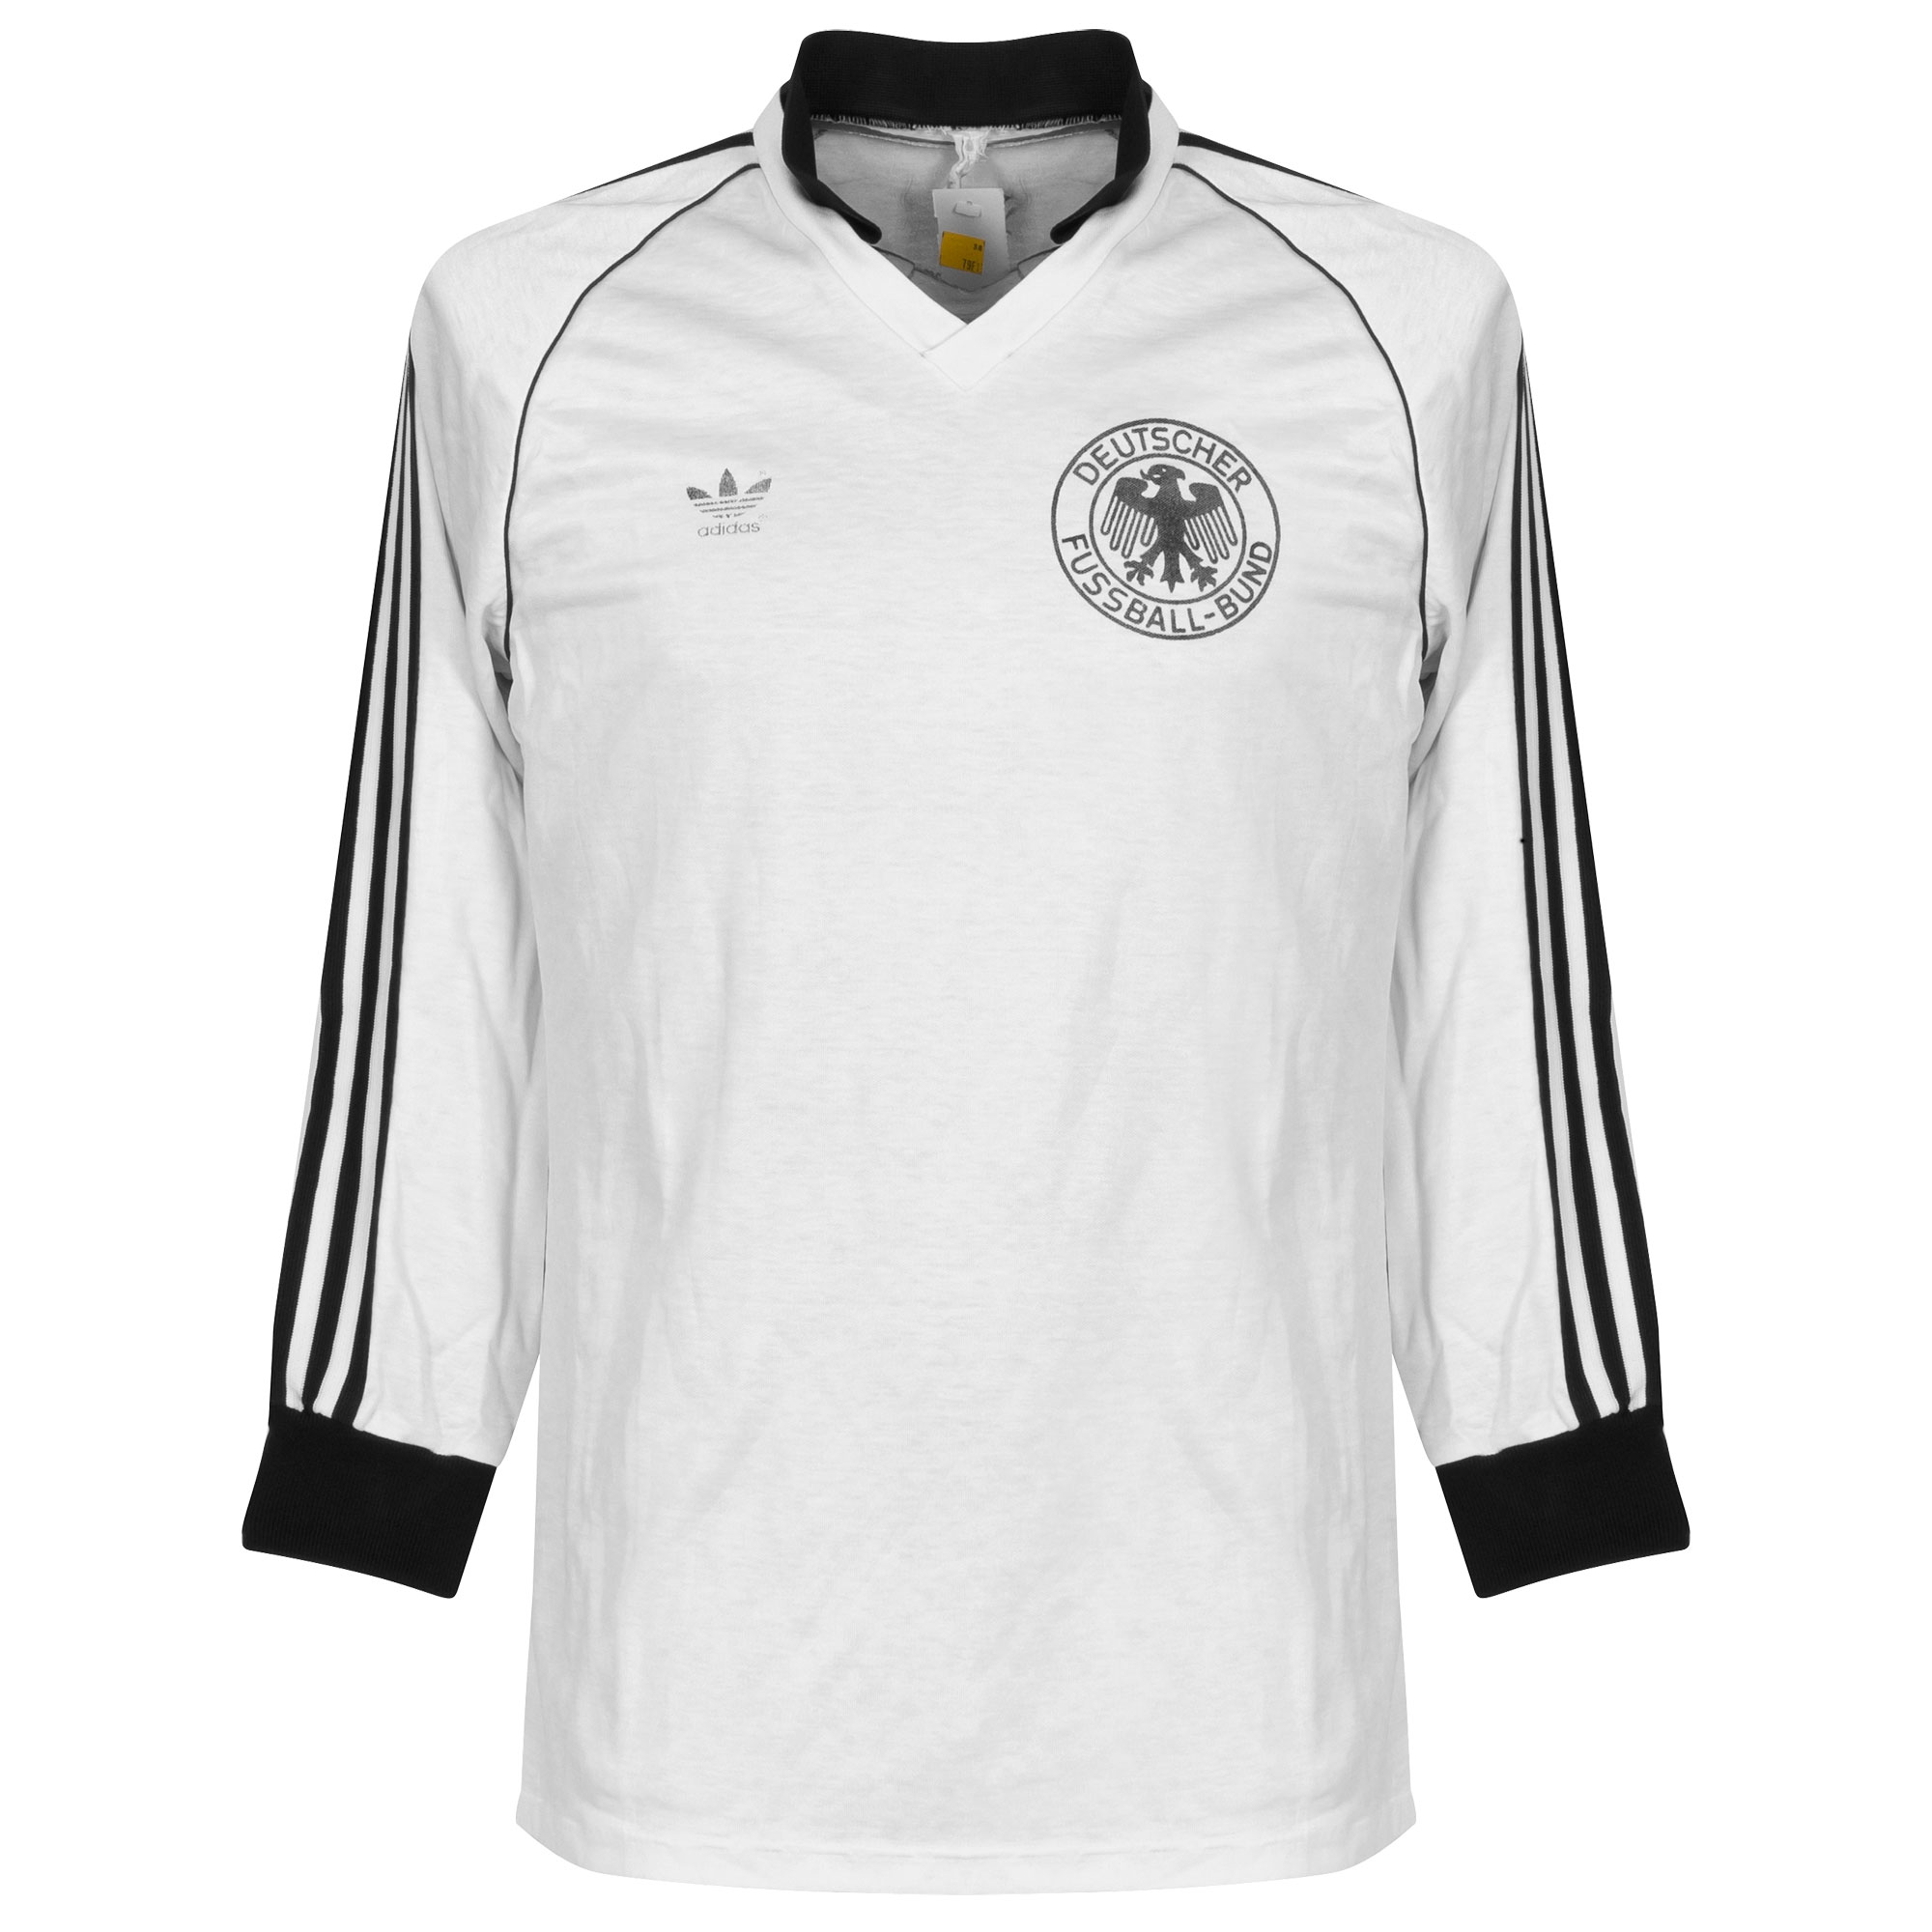 adidas Germany 1980-1982 Home L/S Shirt - USED Condition (Great) - Size Large